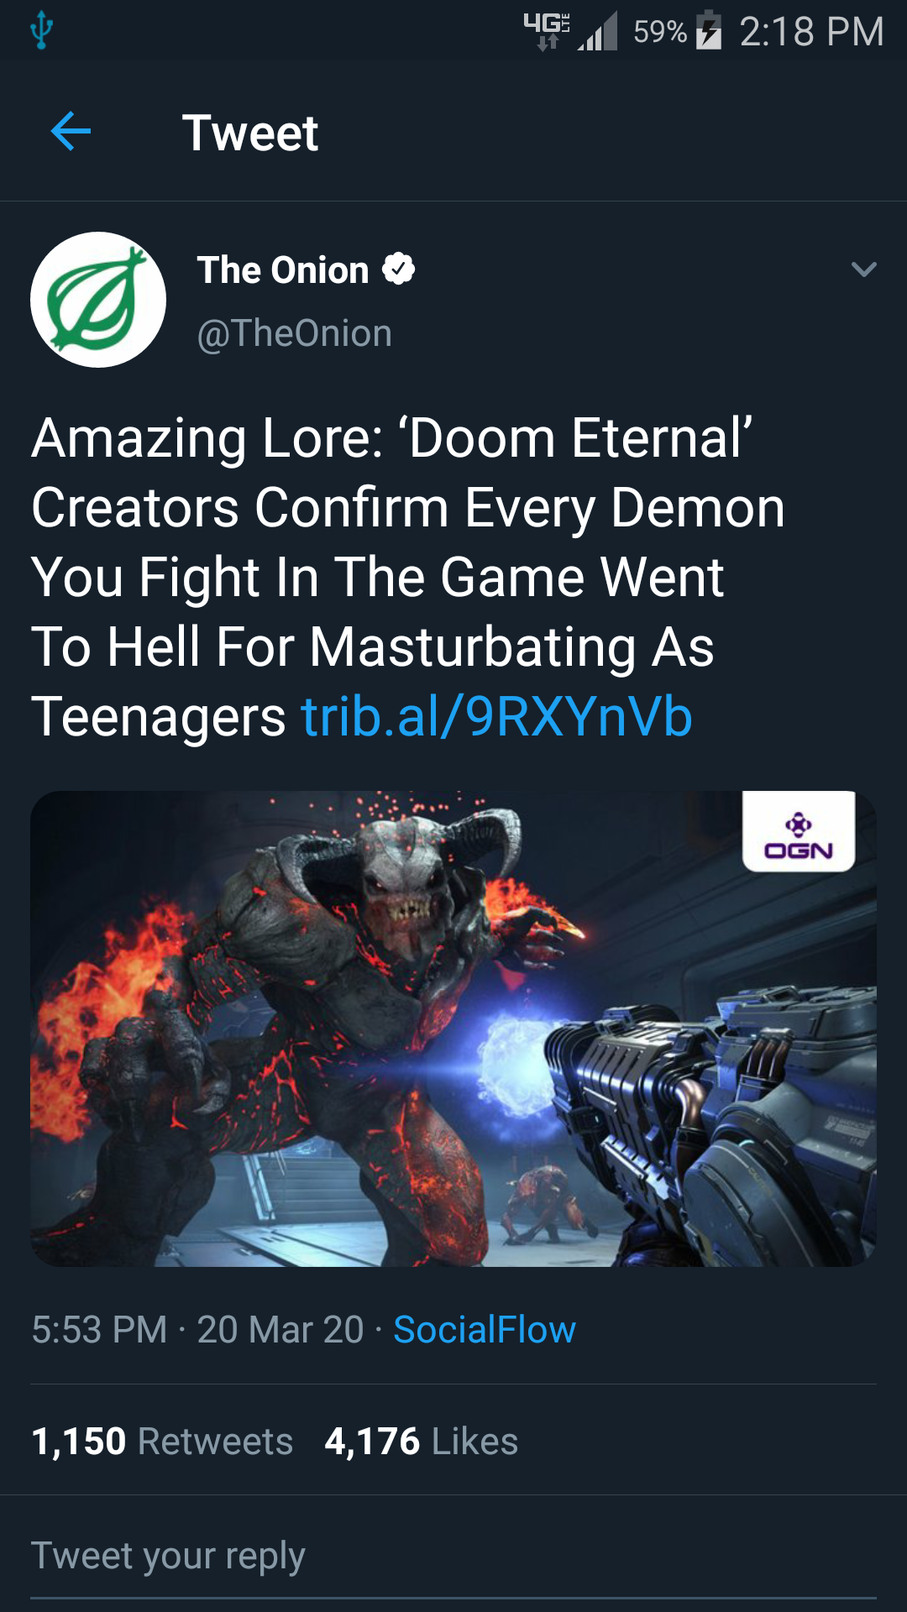 dongs in a doom - meme